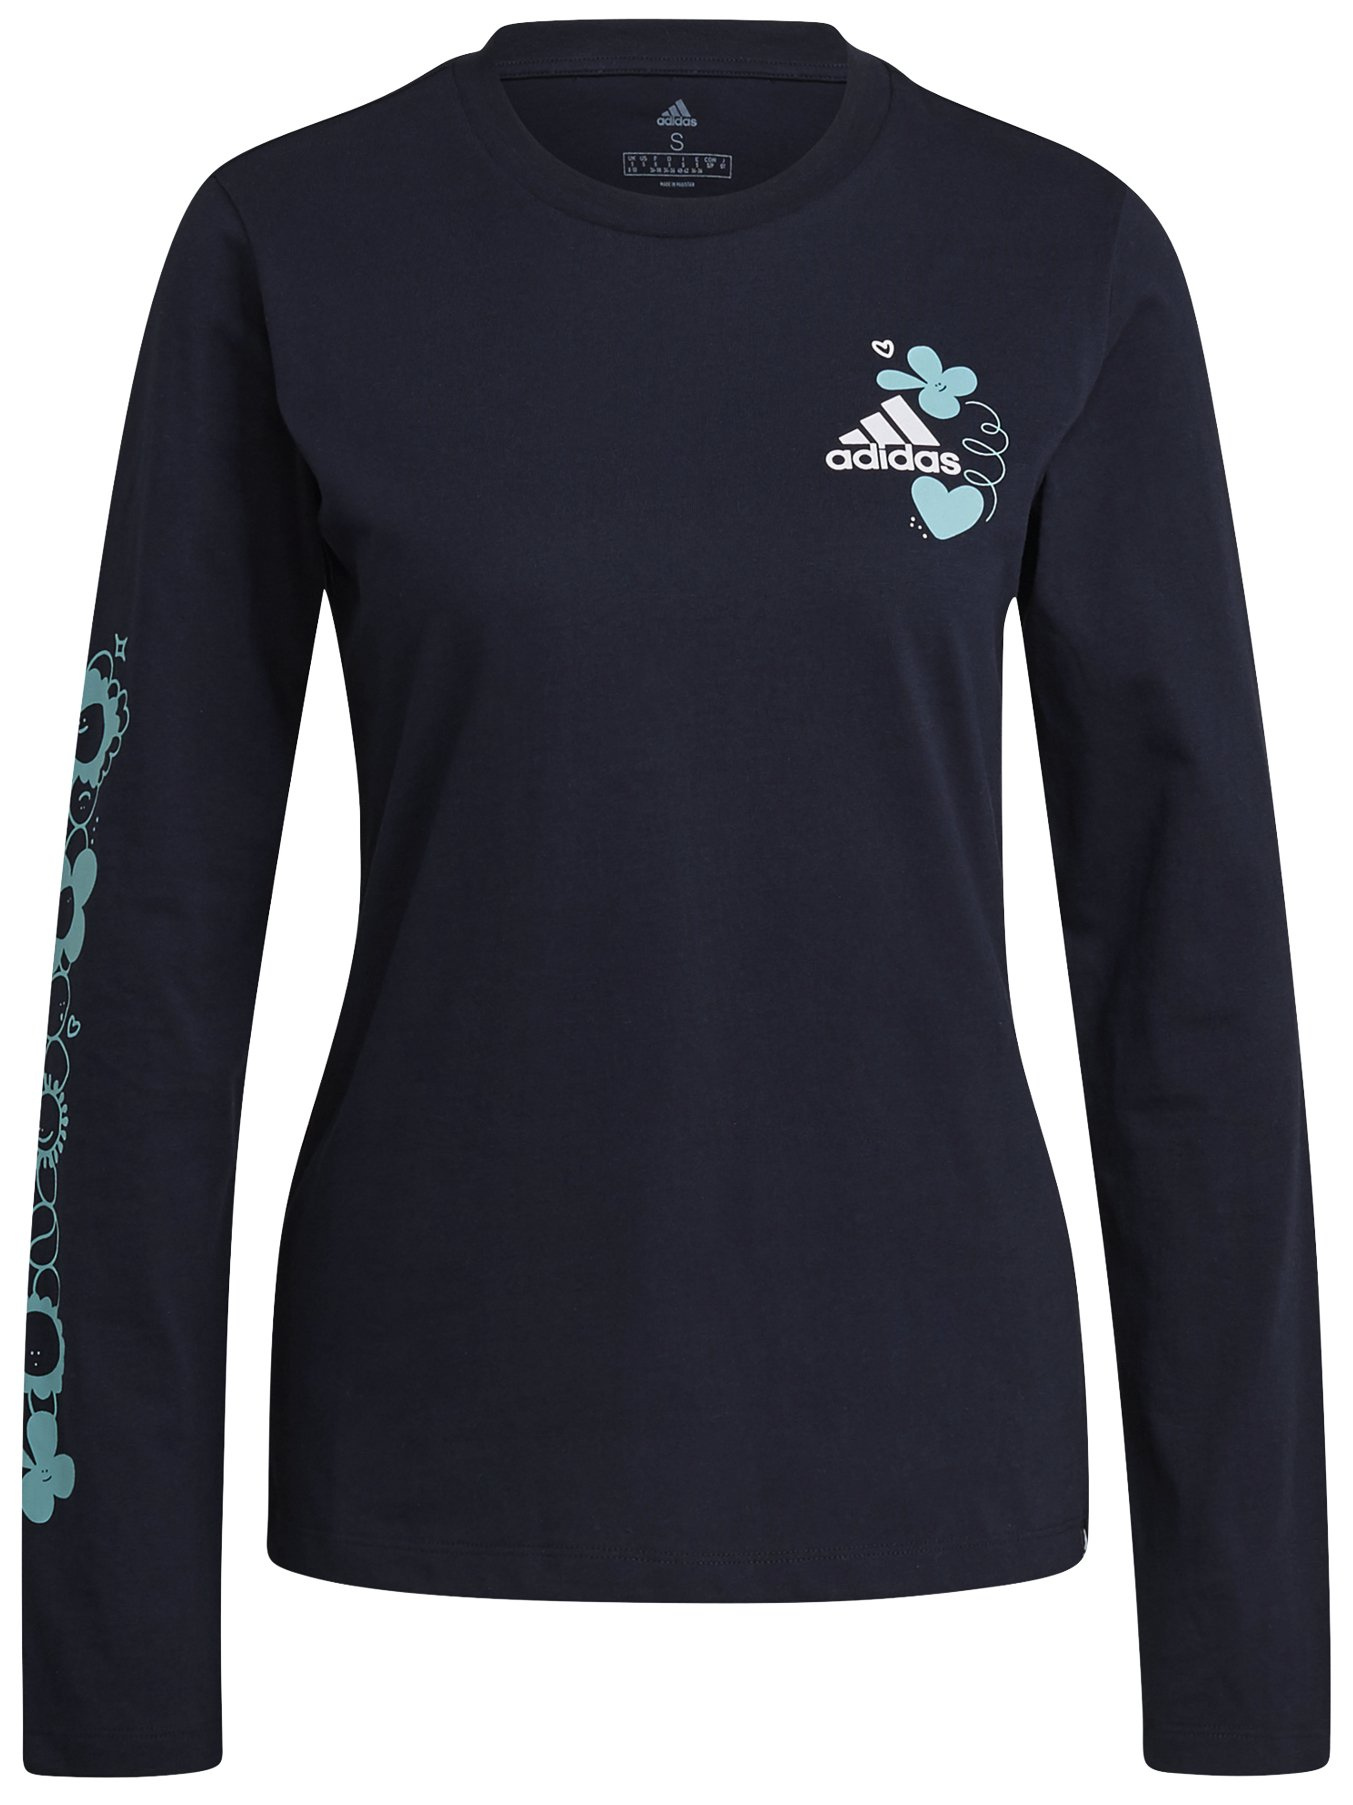 Adidas Floral Long Sleeve Graphic Tee S